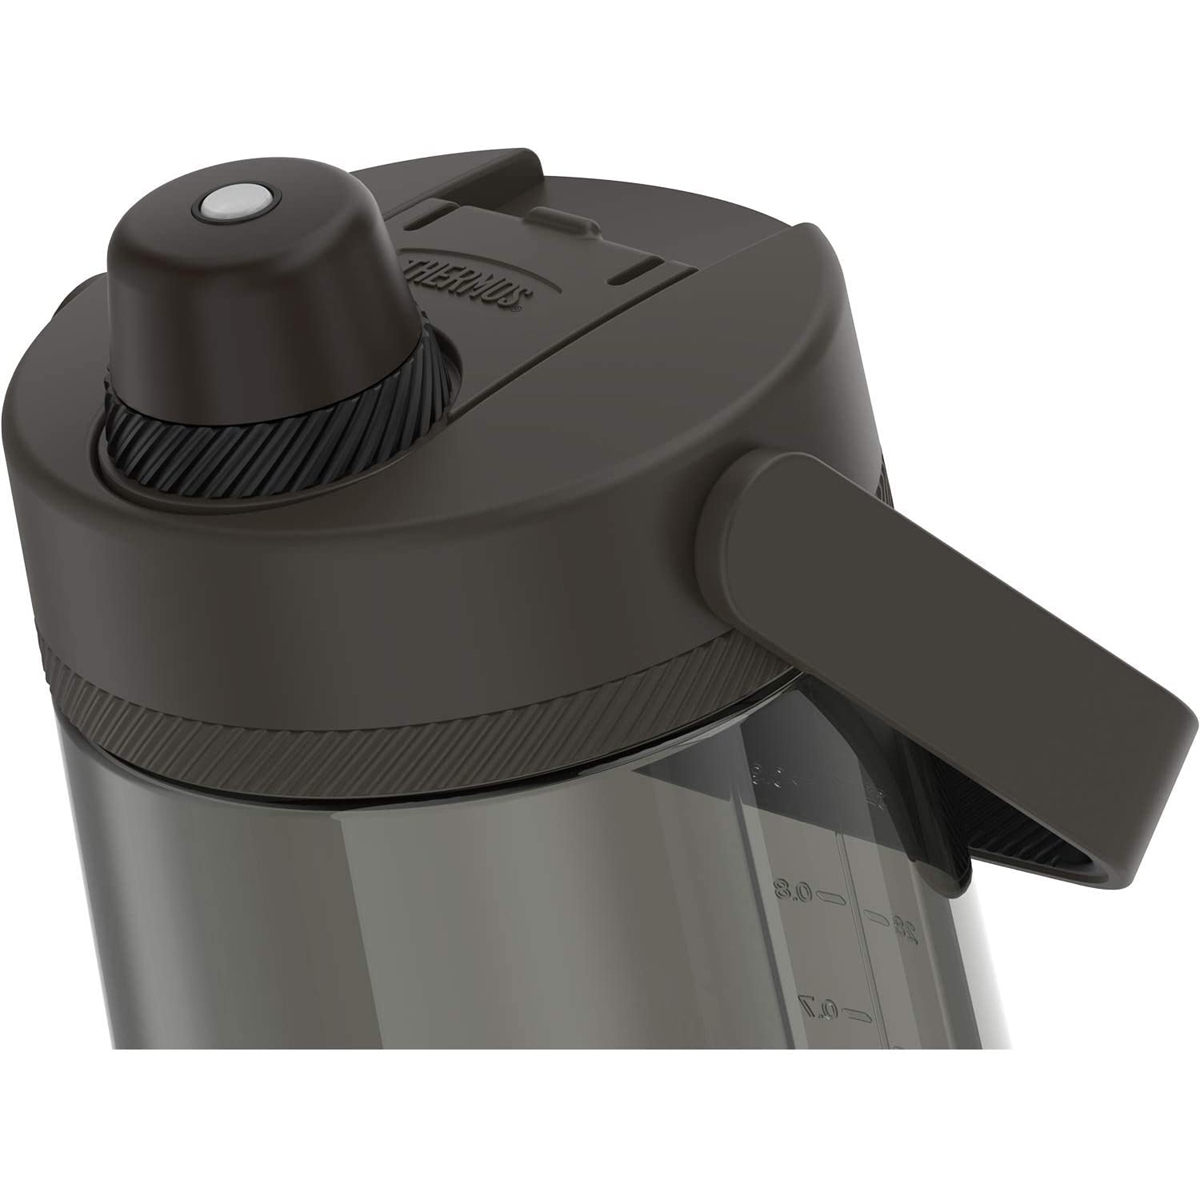 Thermos-40-oz-Guardian-Collection-Hard-Plastic-Hydration-Bottle-with-Spout thumbnail 5